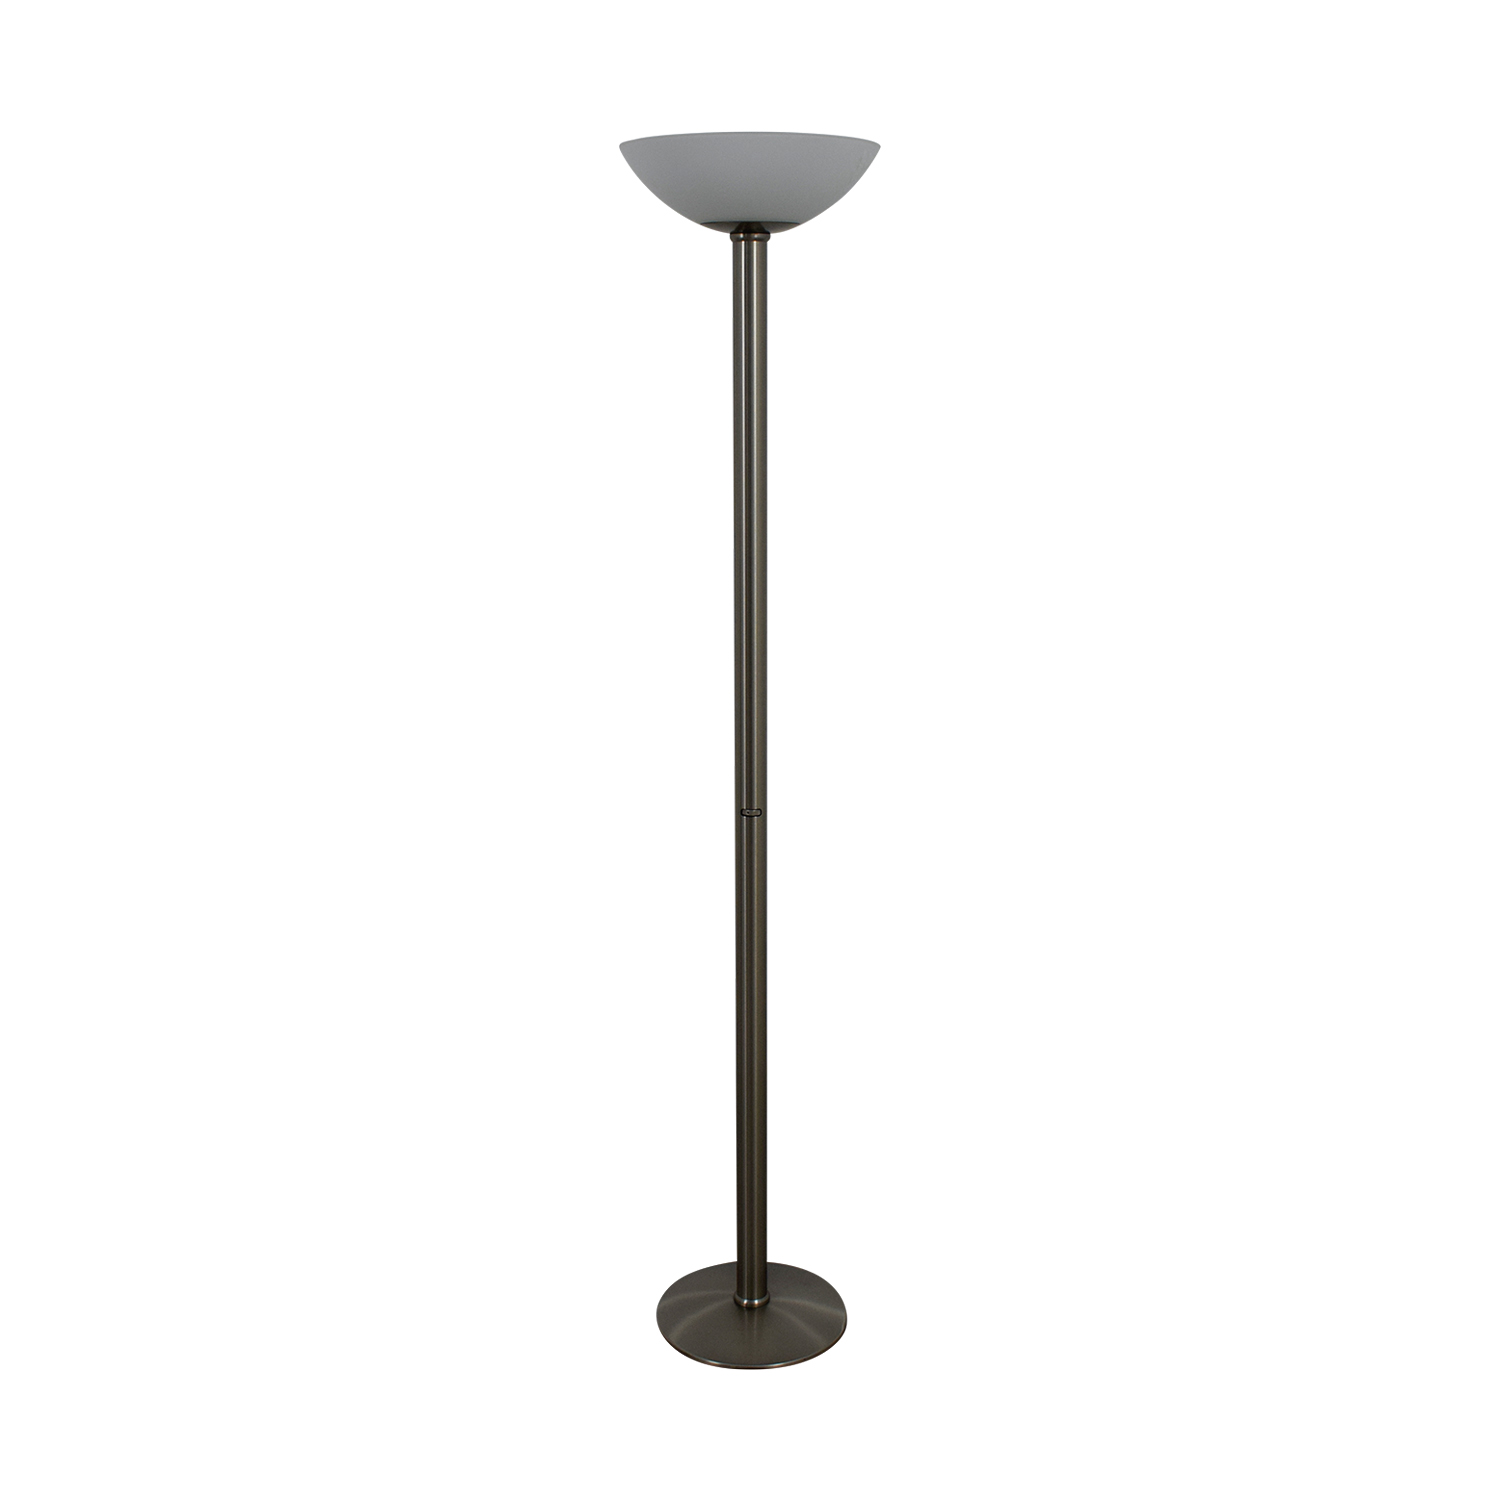 buy Holtkotter Lighting Holtkotter Lighting 2573 Satin Nickel Torcherie Floor Lamp online